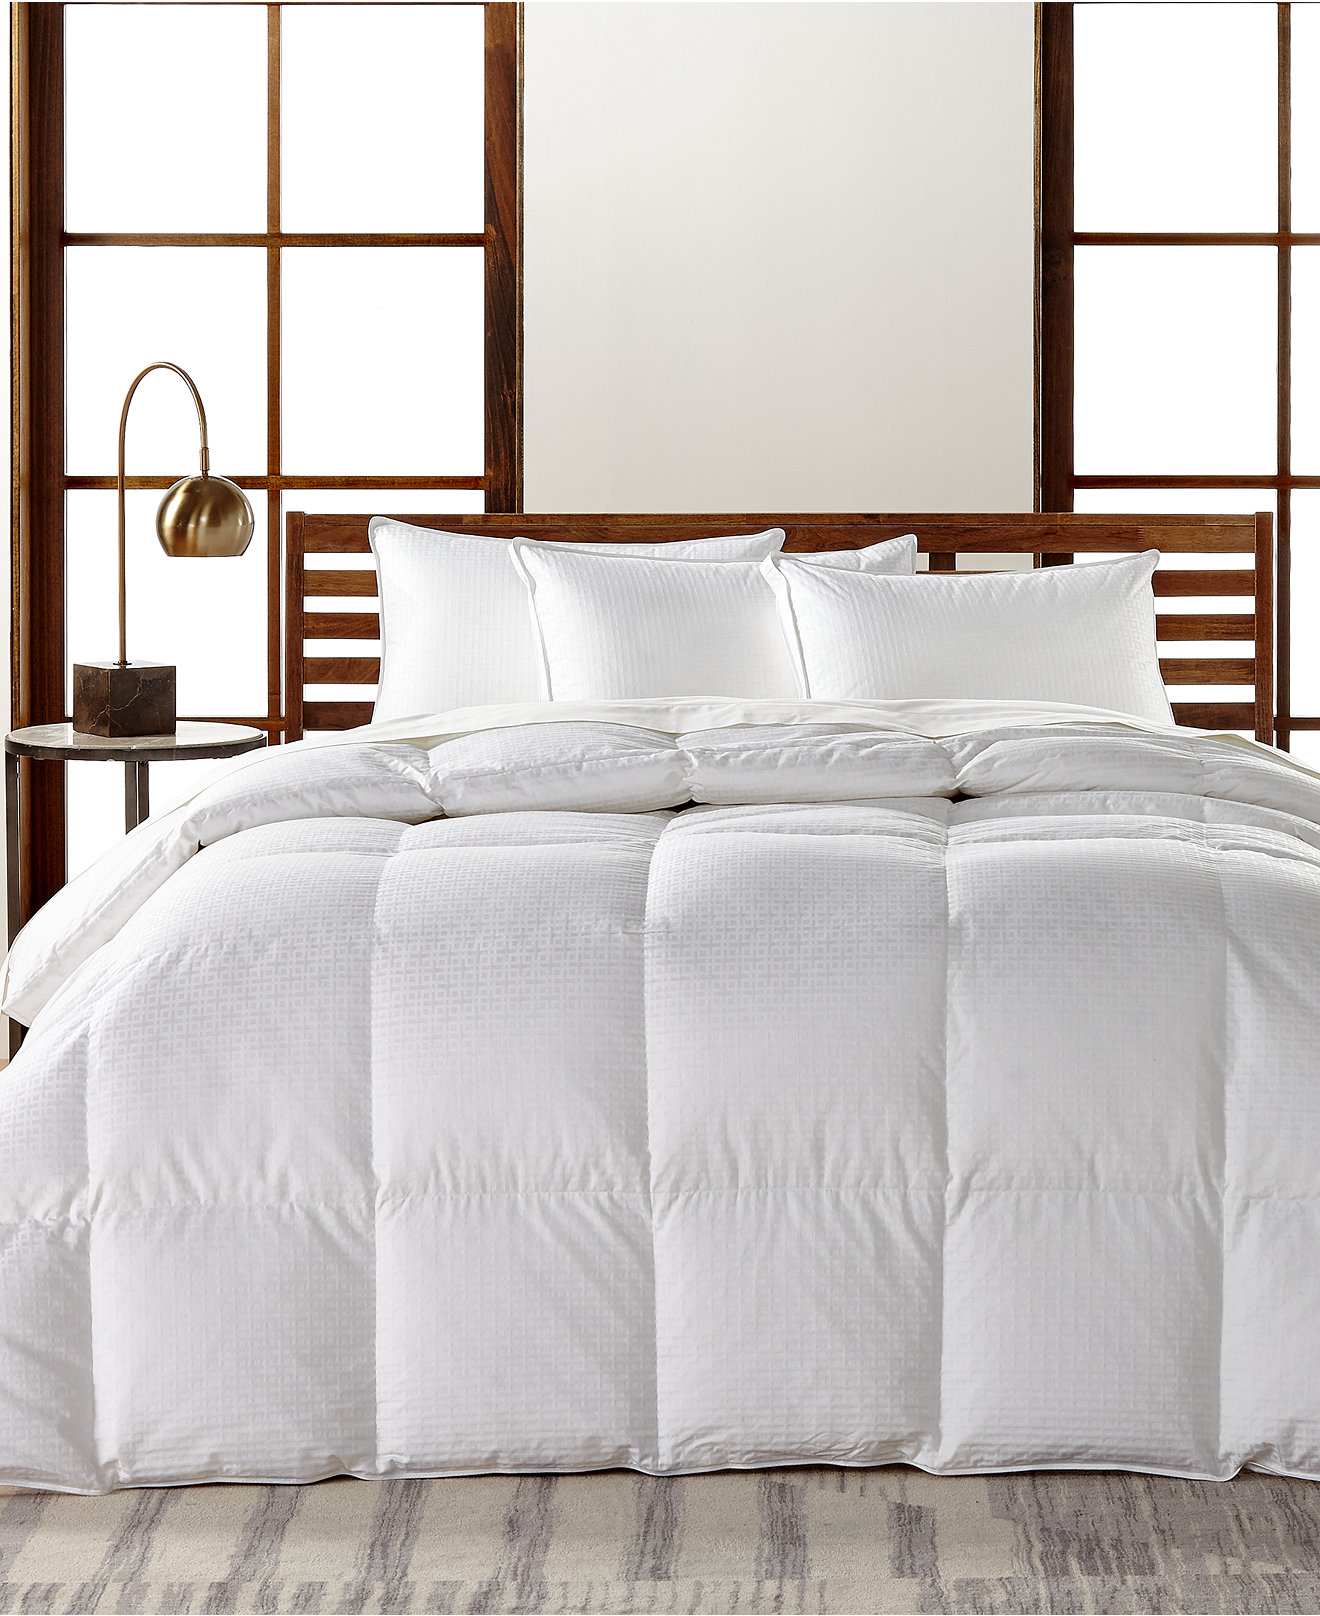 down comforters and down alternative  macy's - hotel collection european white goose down lightweight comfortershypoallergenic ultraclean down created for macy's